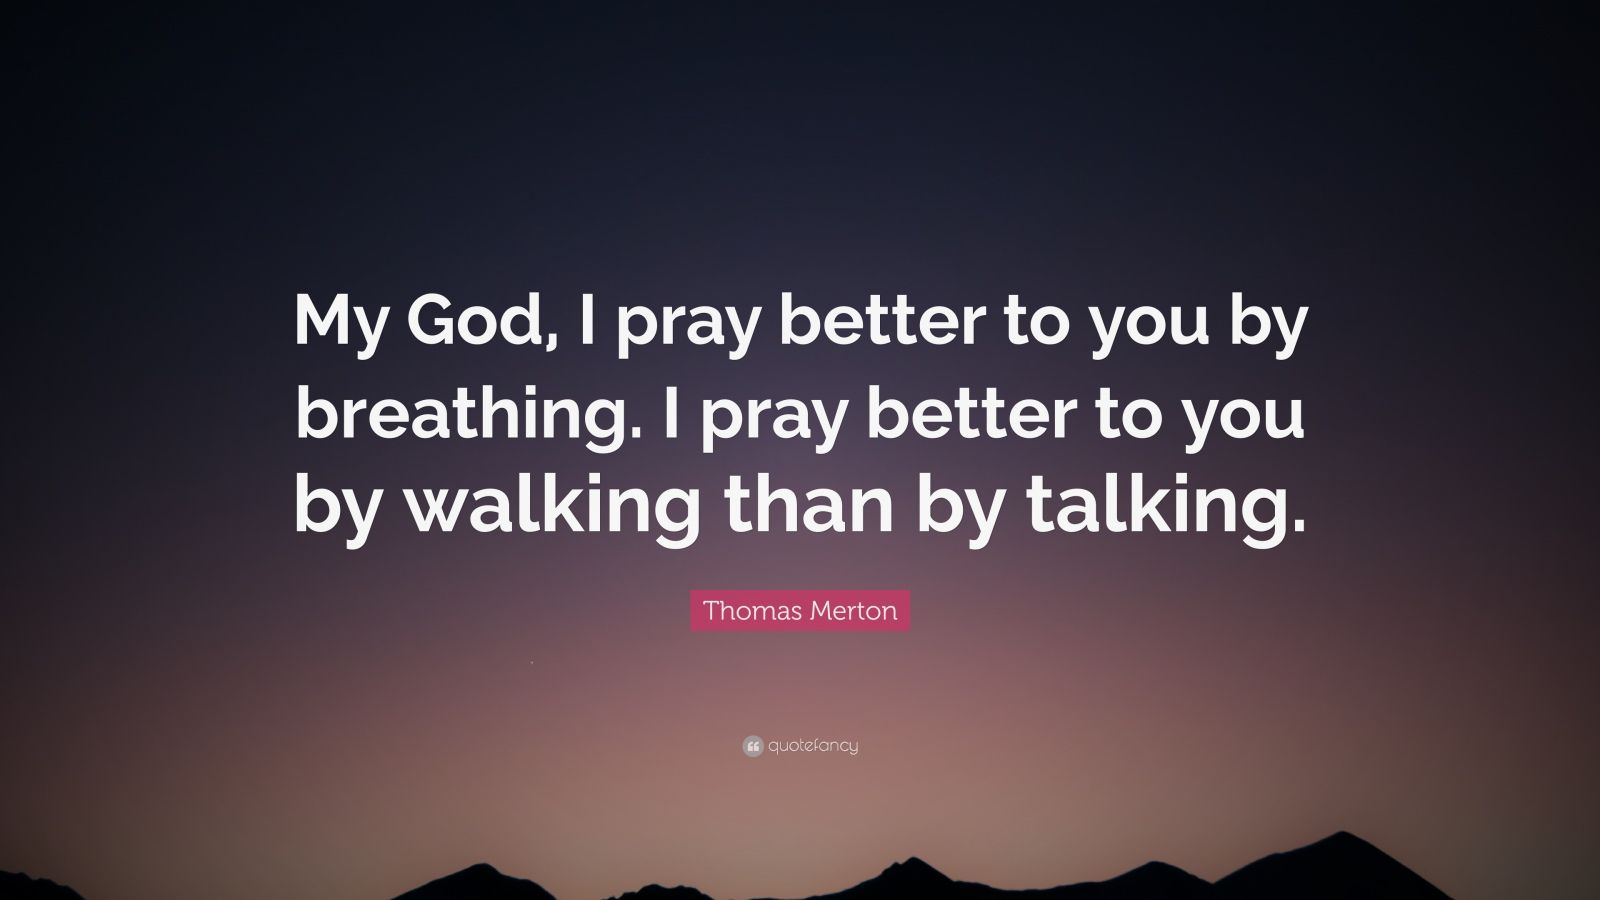 """Thomas Merton Quote: """"My God, I pray better to you by breathing. I pray better to you by walking than by talking."""""""